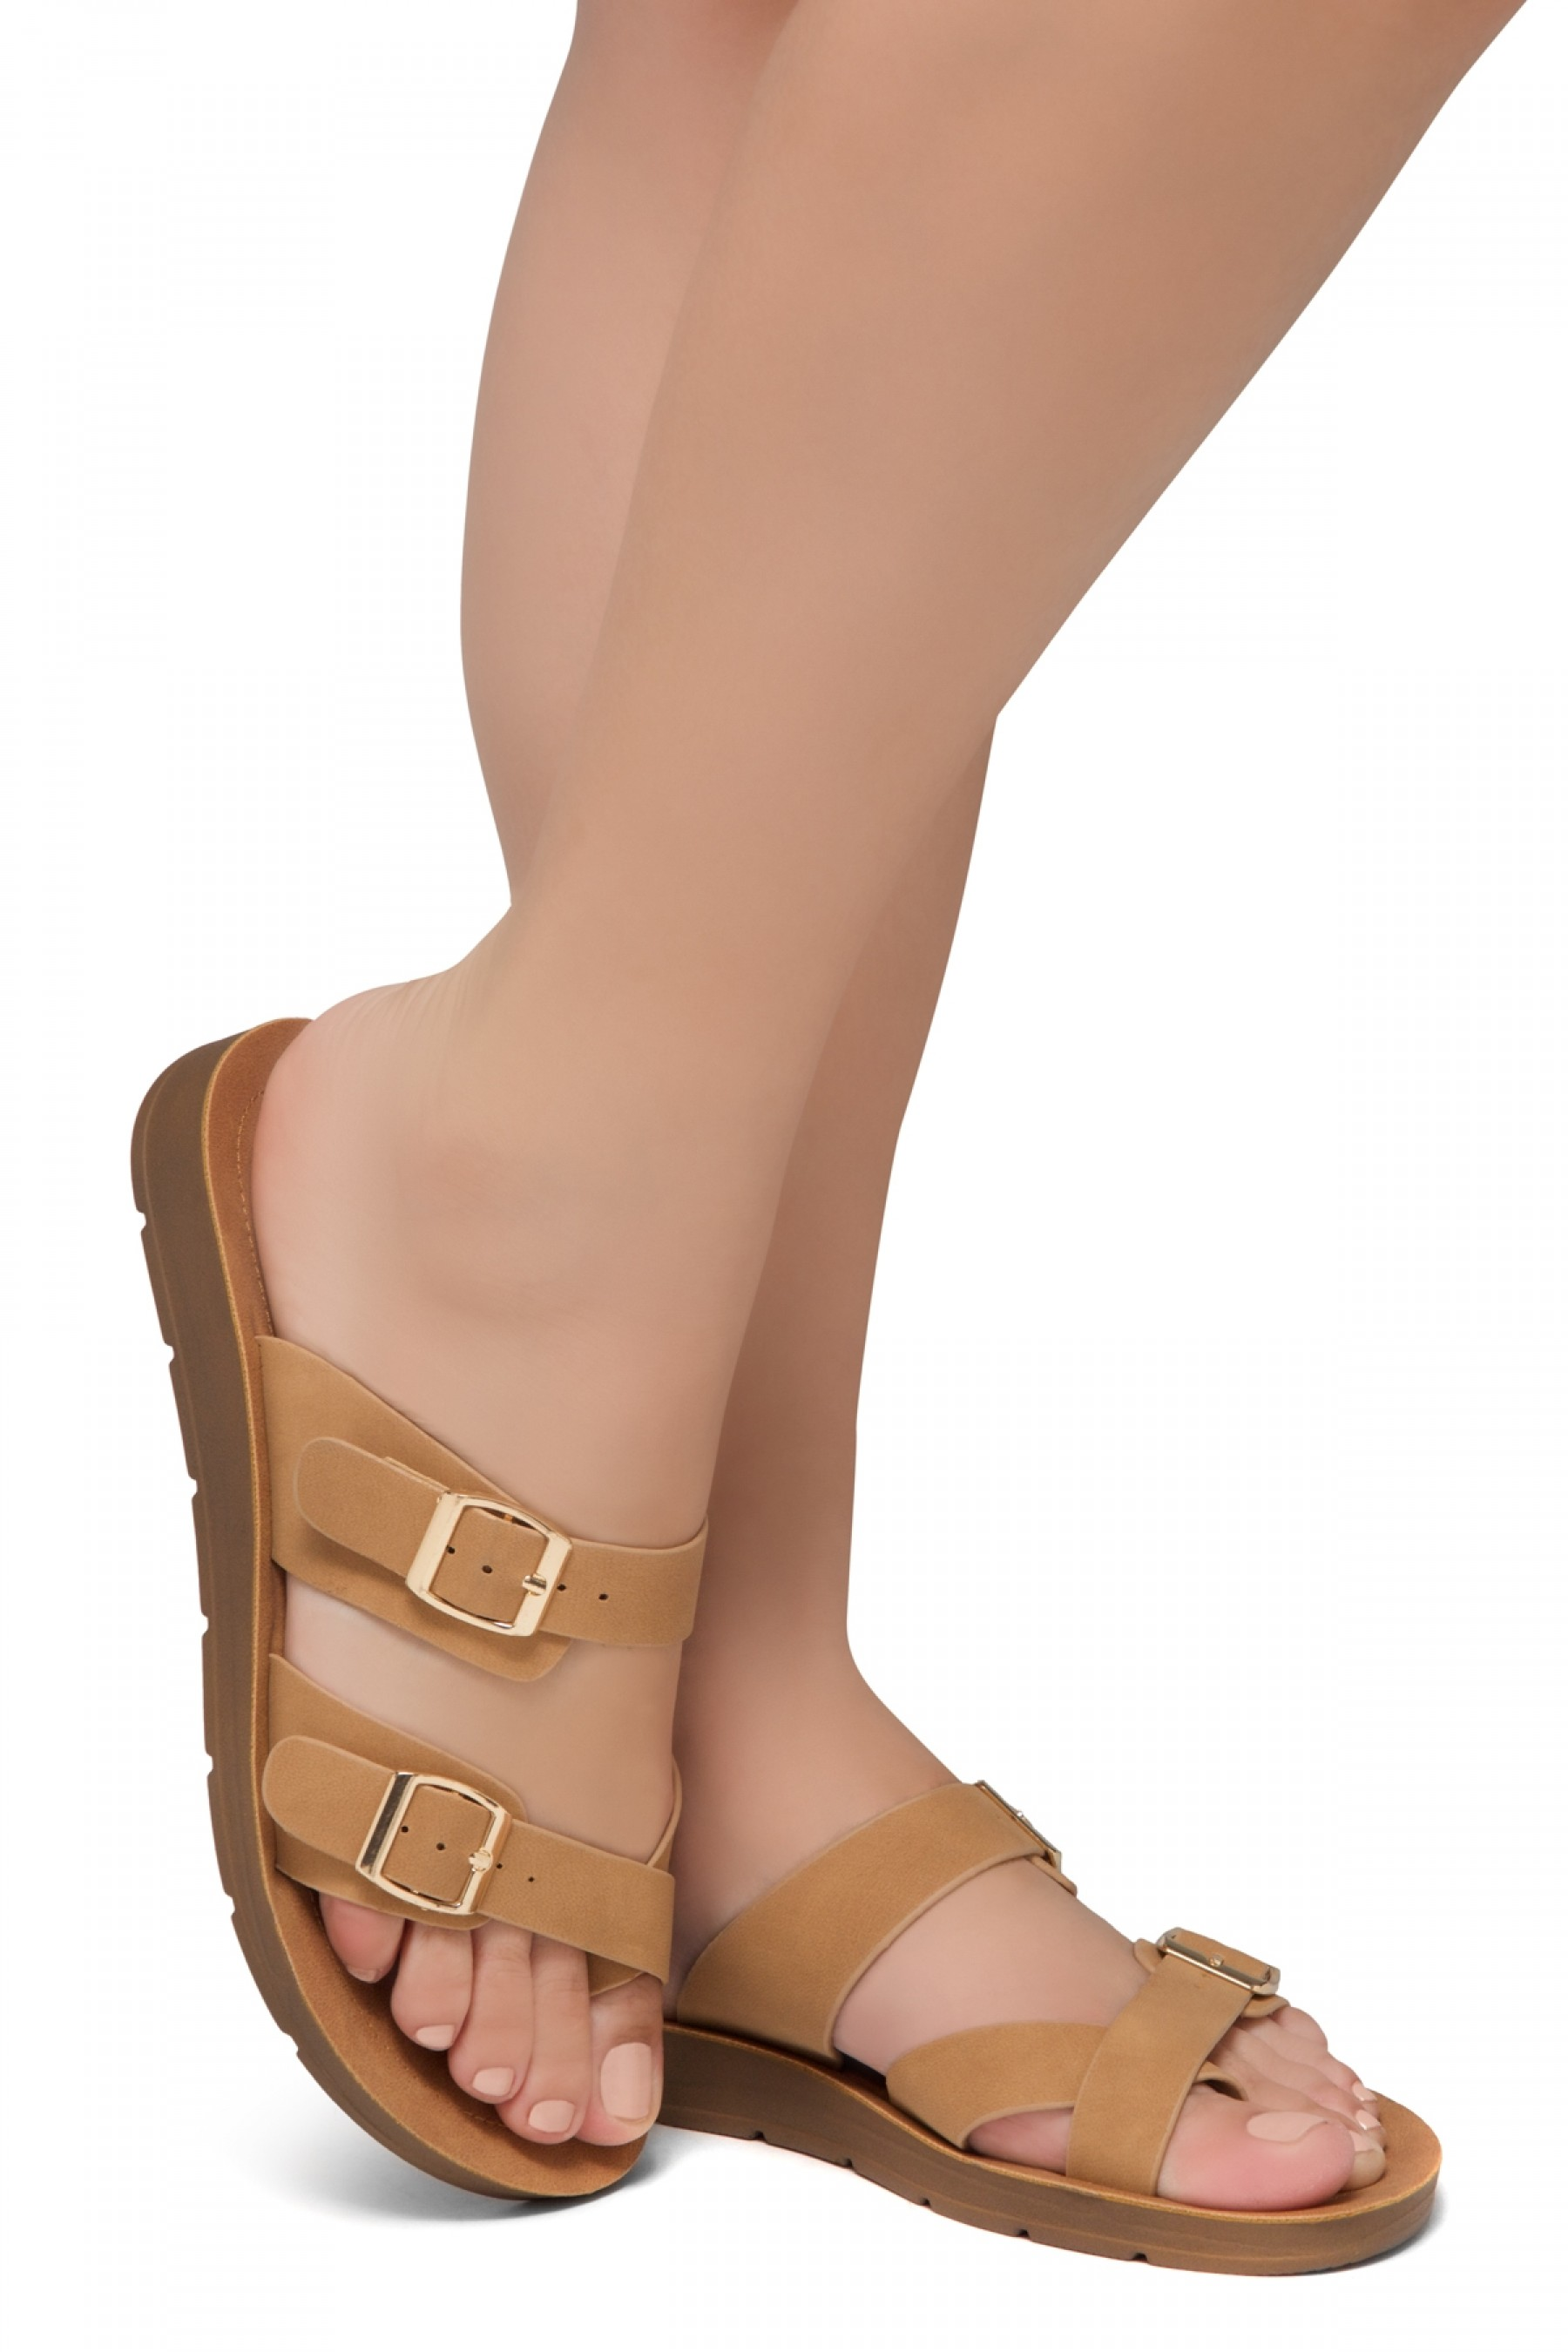 Shoe Land SL-Nolita Women's Flat Gladiator Thong Sandals Greek Platform Low Wedge Shoes (Tan)